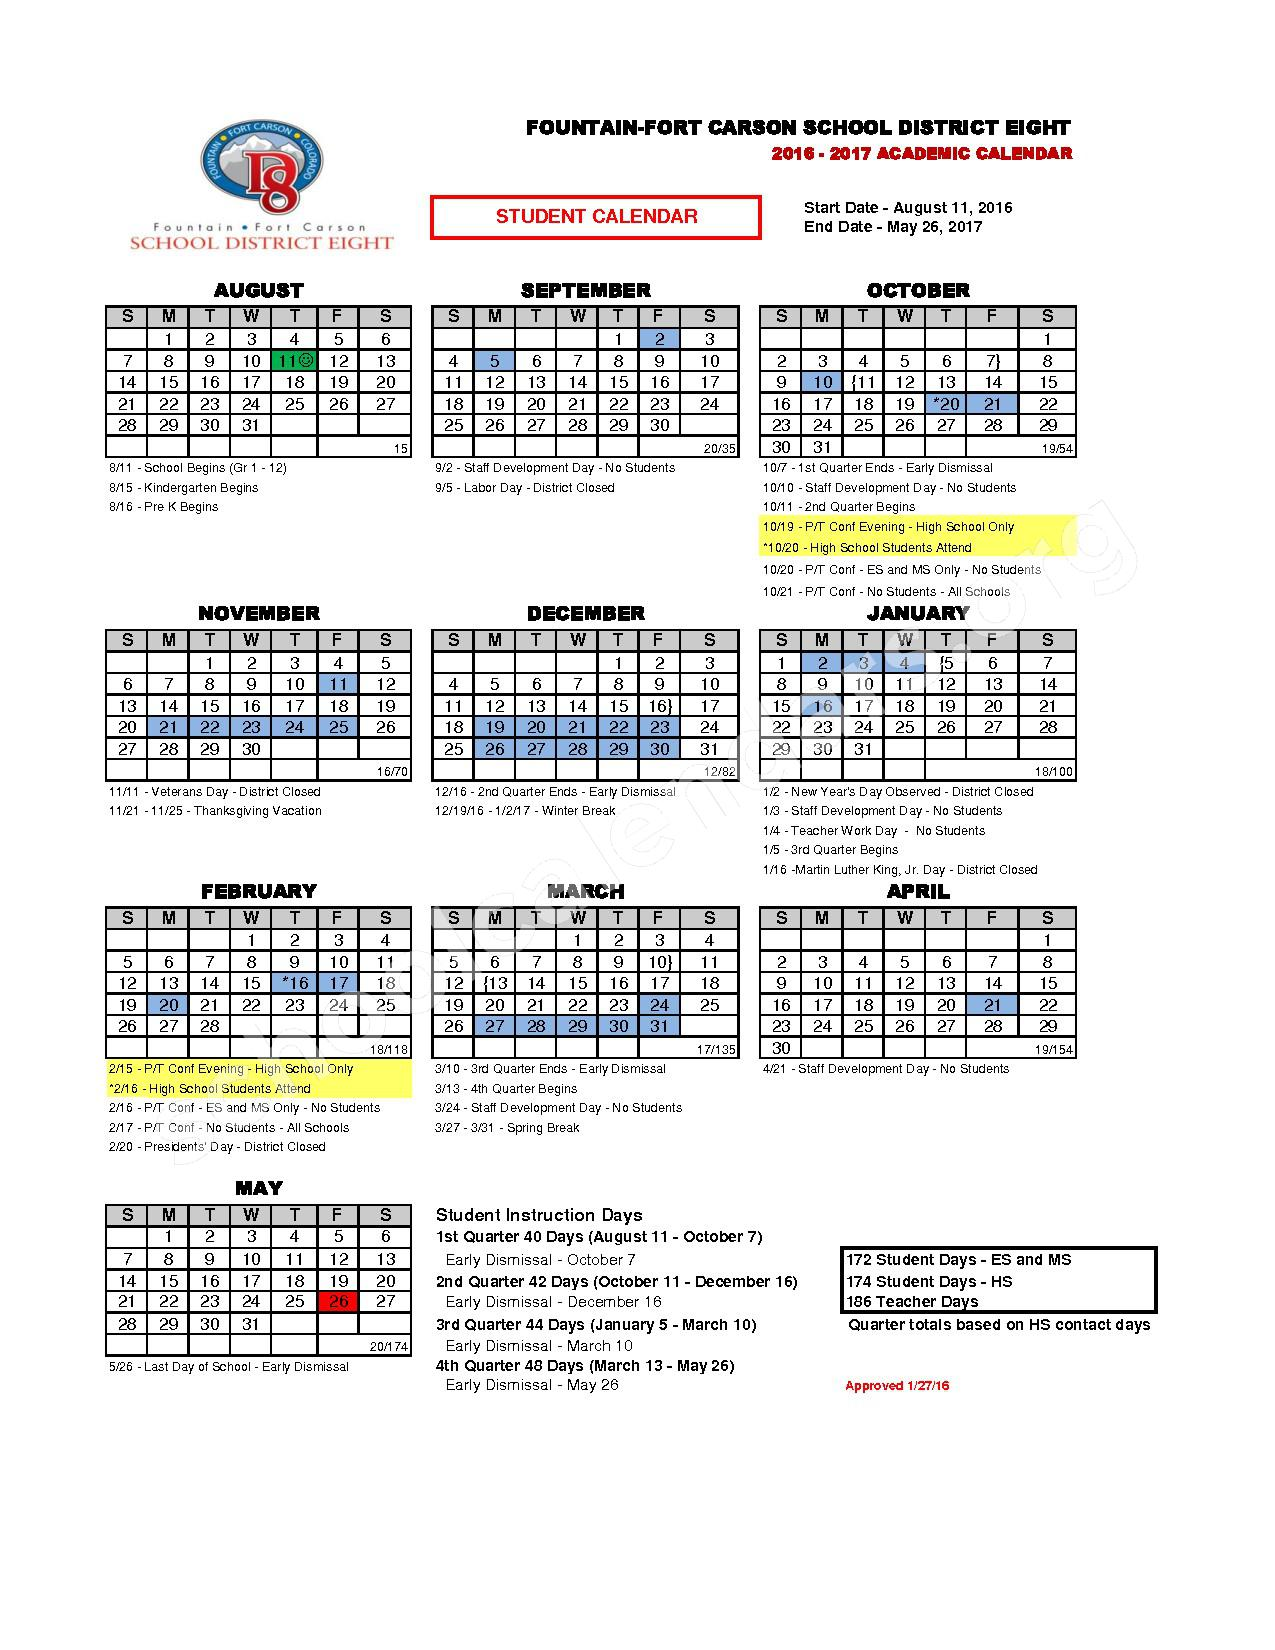 2016 - 2017 District Calendar – Abrams Elementary School – page 1